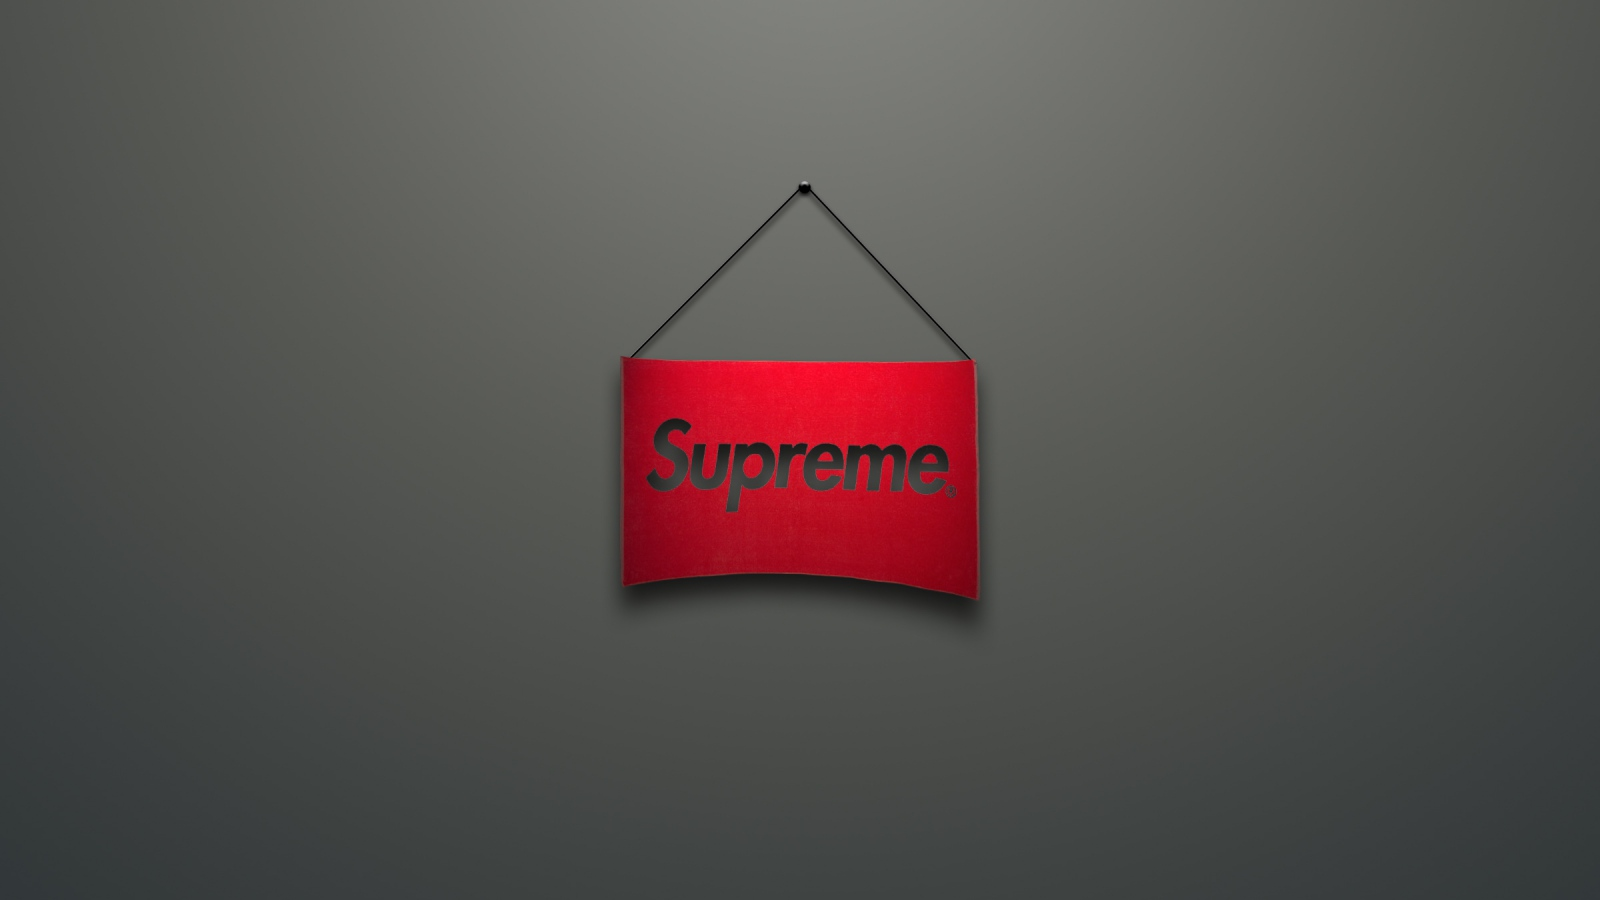 Download 1600x900 Supreme Logo Red Minimalism Wallpaper Background 1600x900